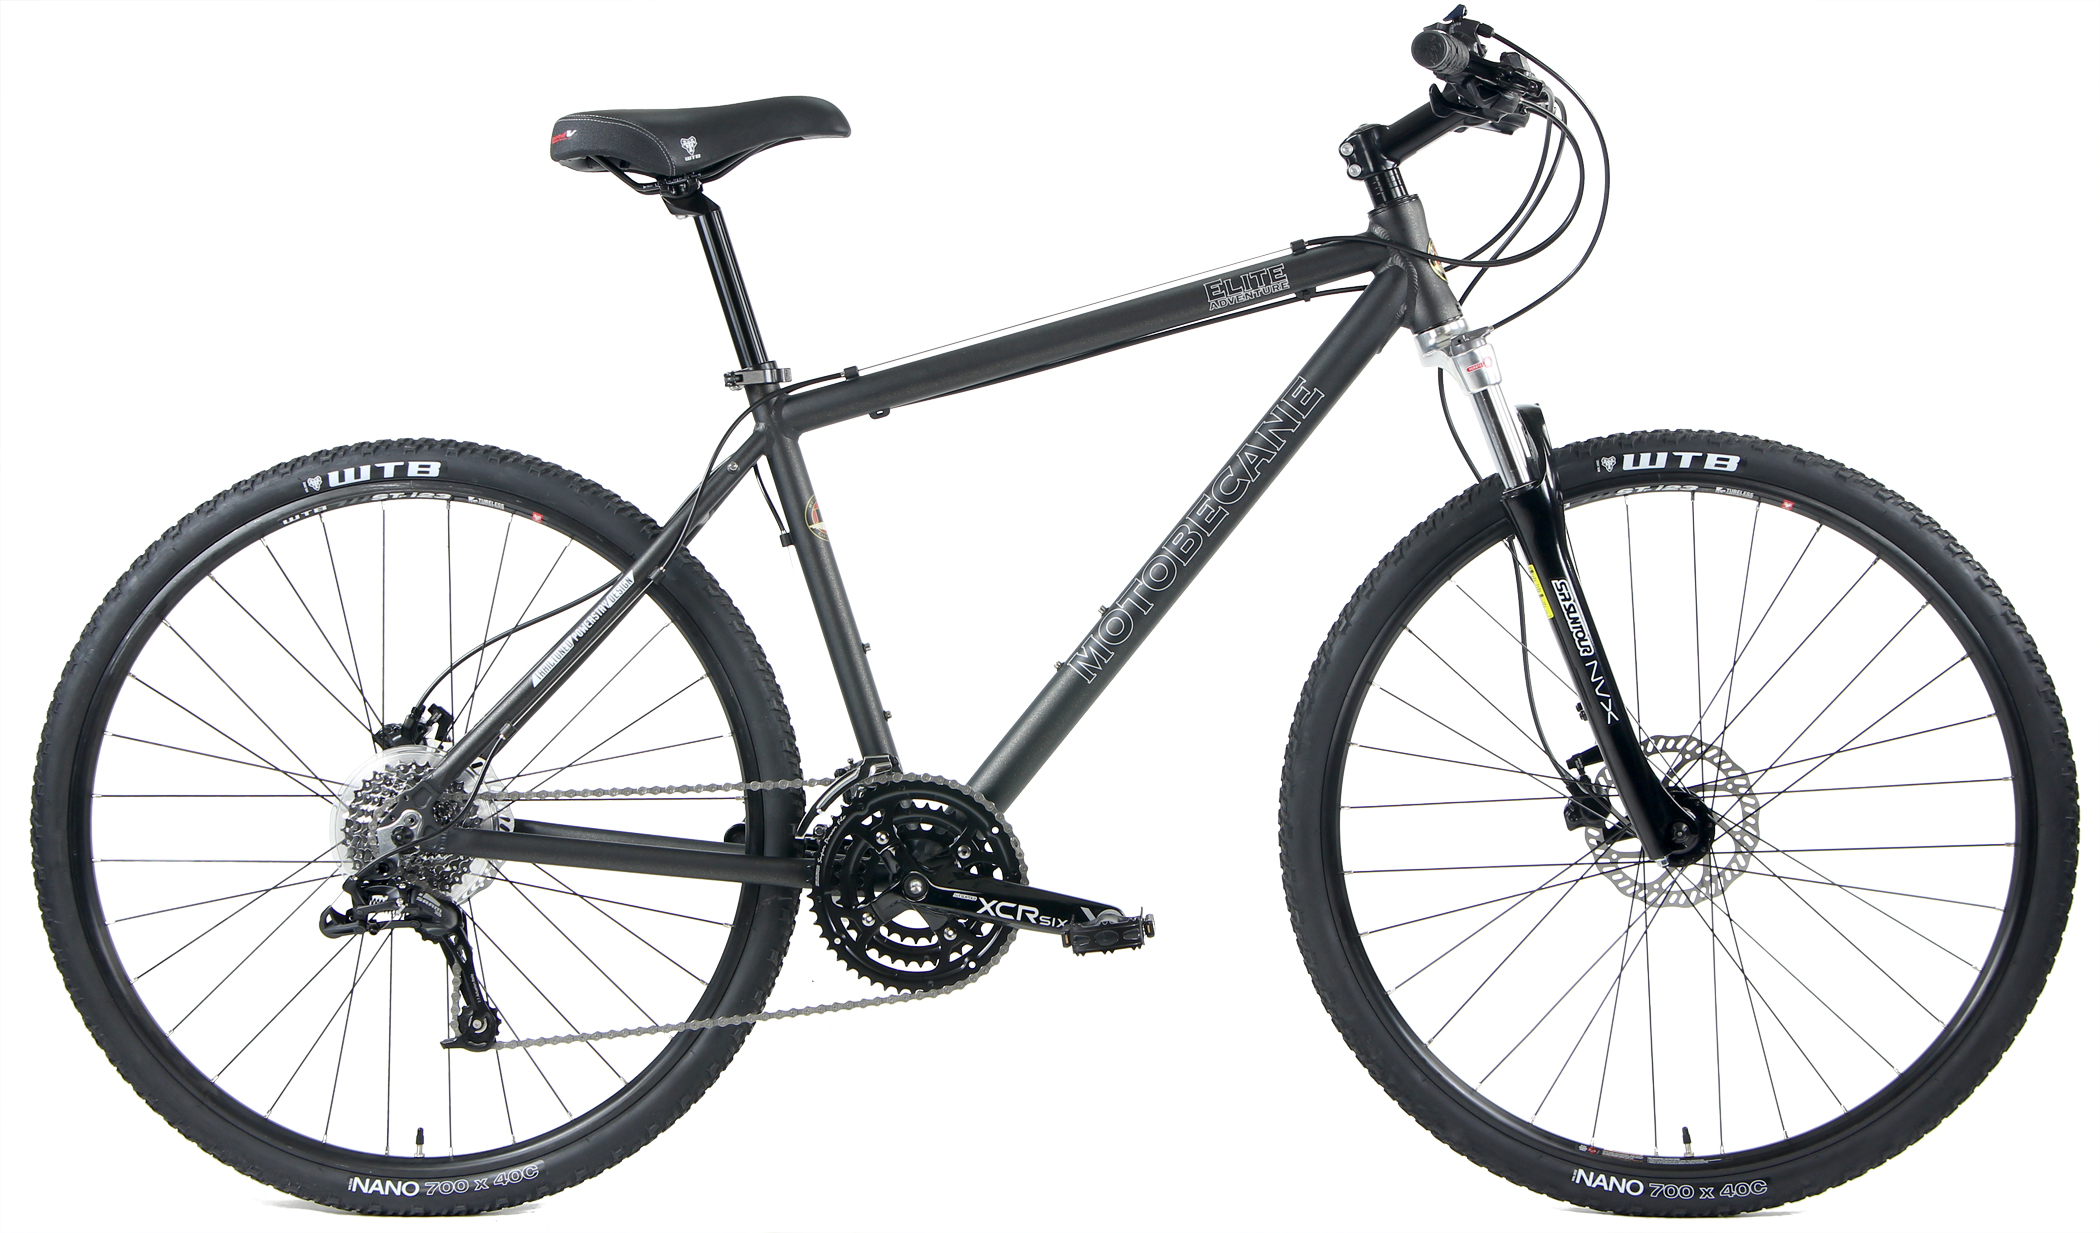 ELITE ADVENTURE X5 LTD - SRAM ALUMINUM 27sp w/ HYDRAULIC DISC BRAKES